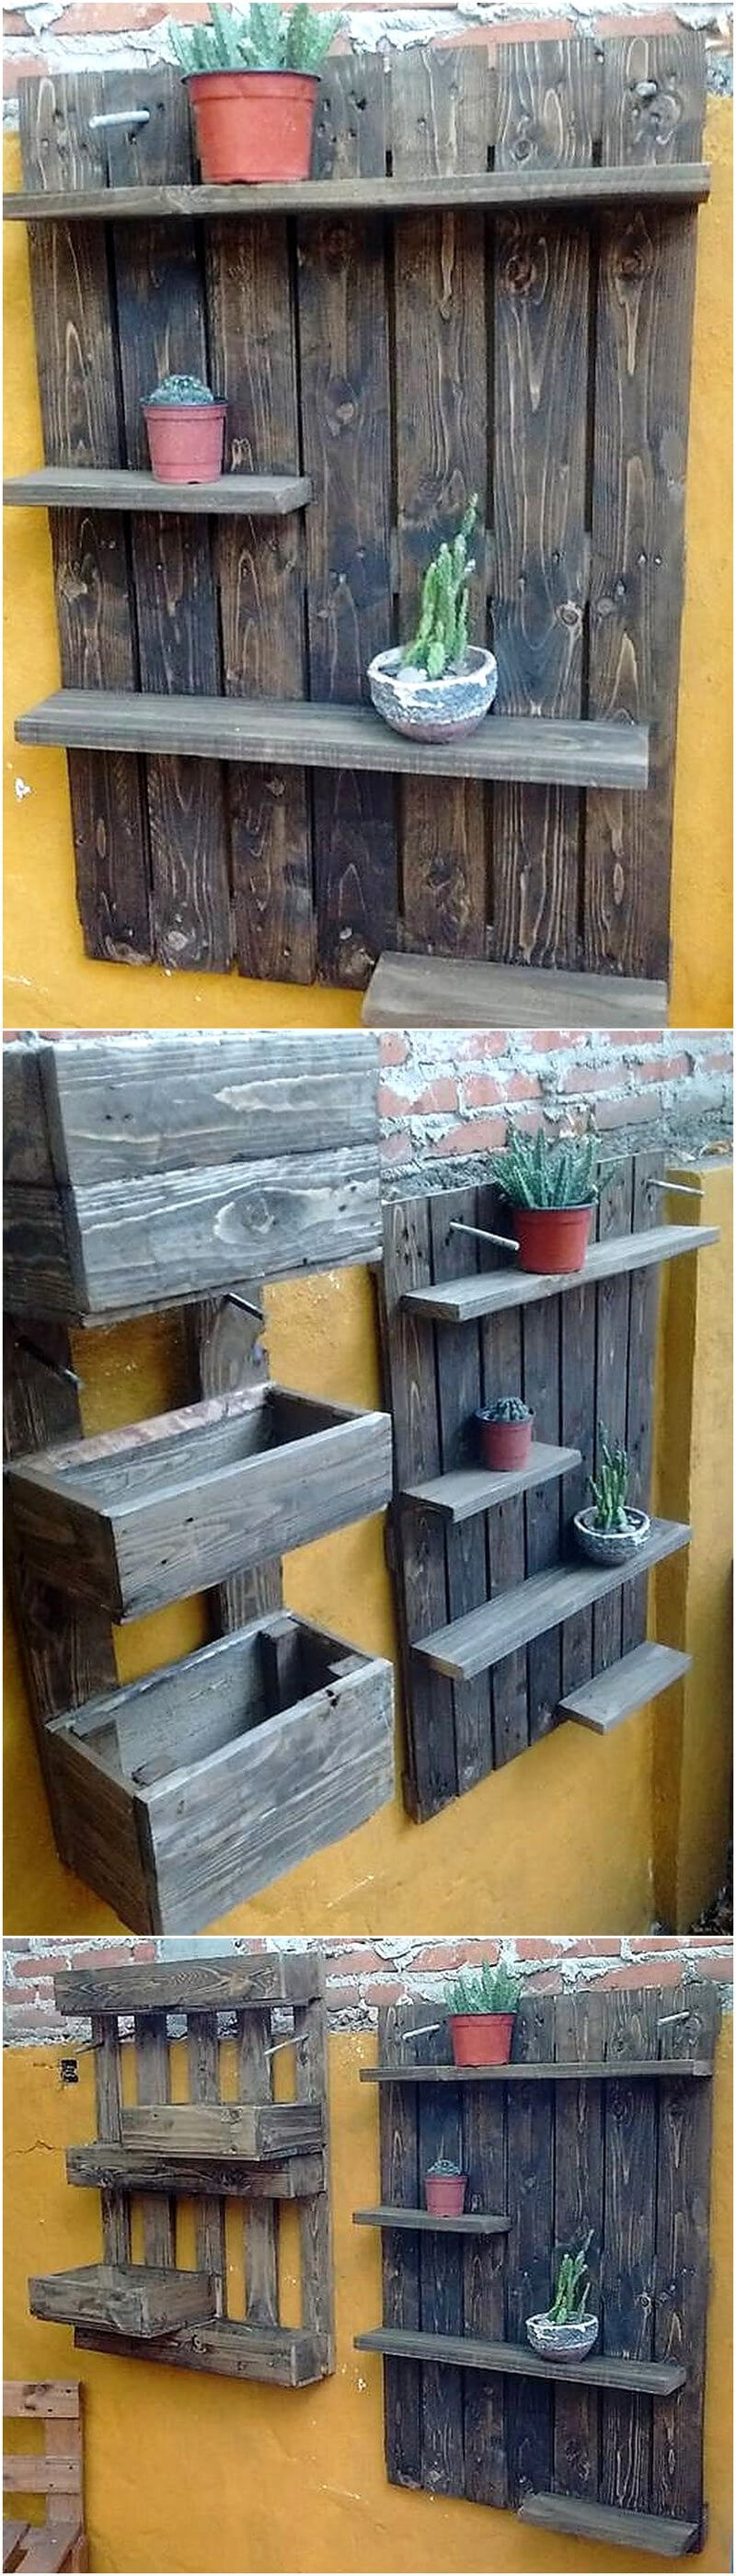 pallets planter and pots stand for wall